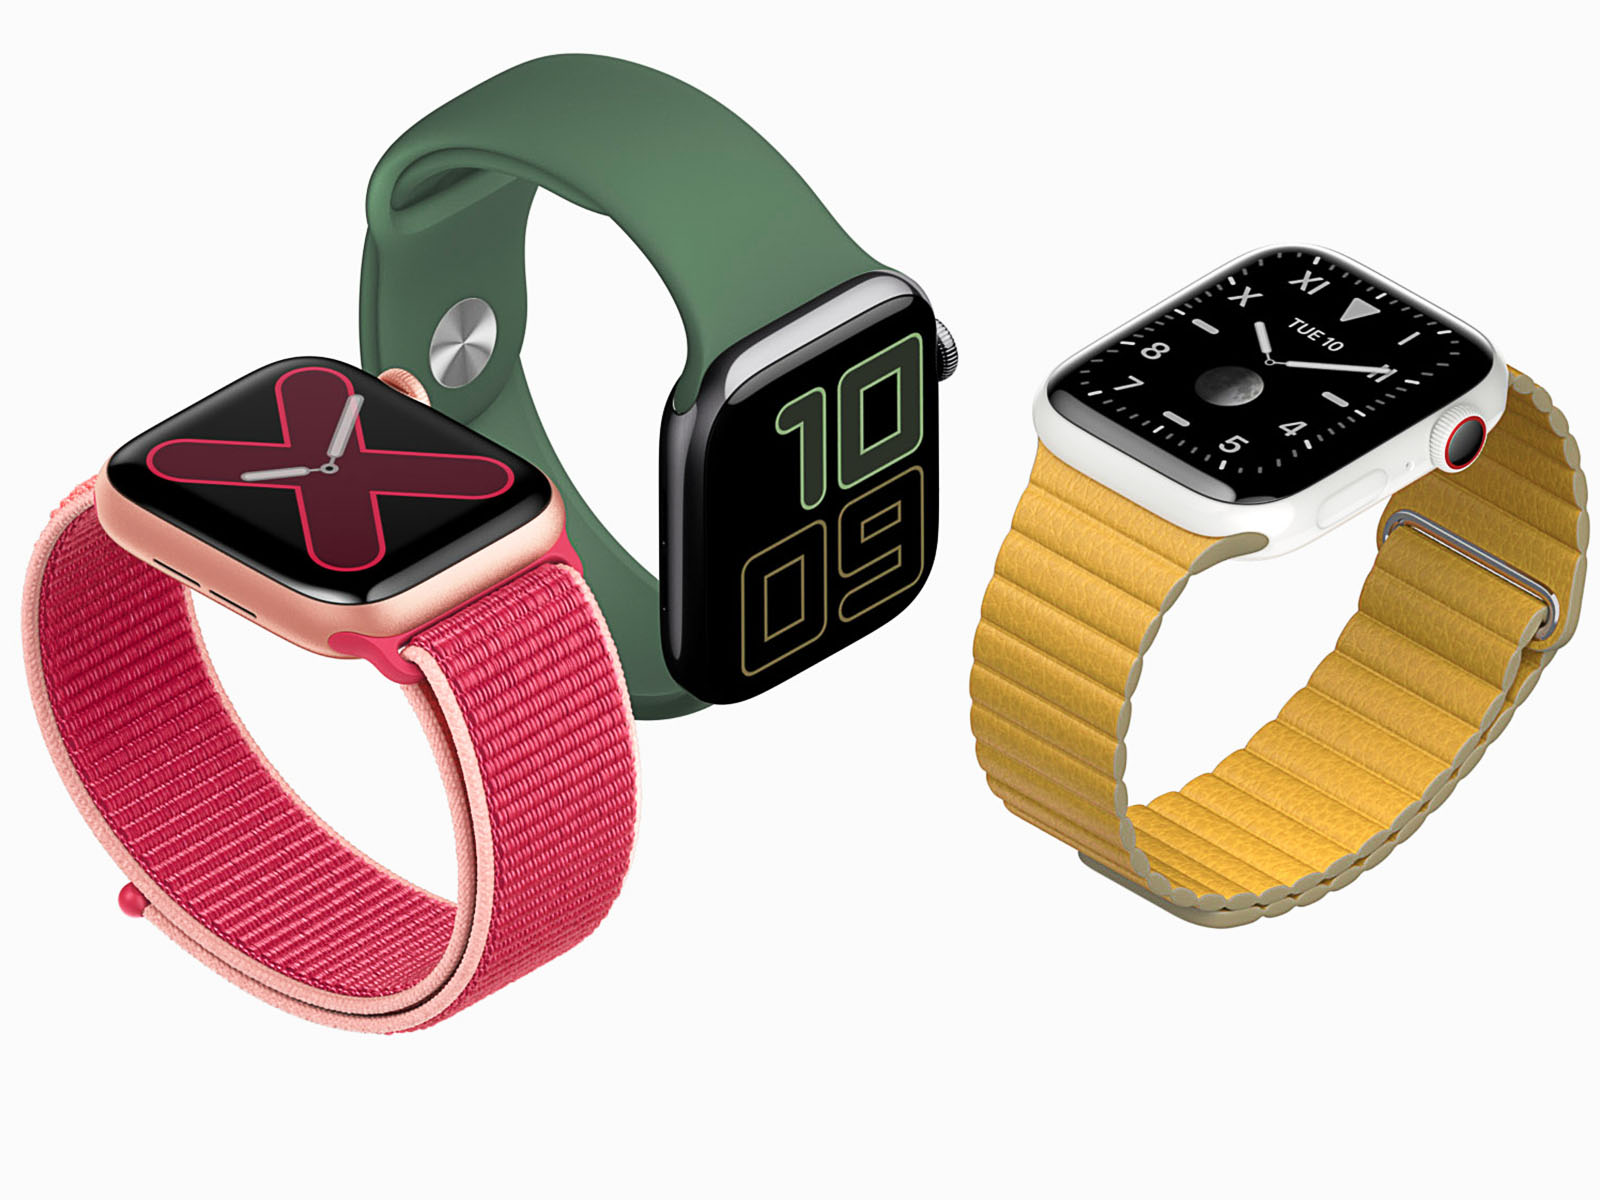 Apple-Watch-Series-5-7.jpg